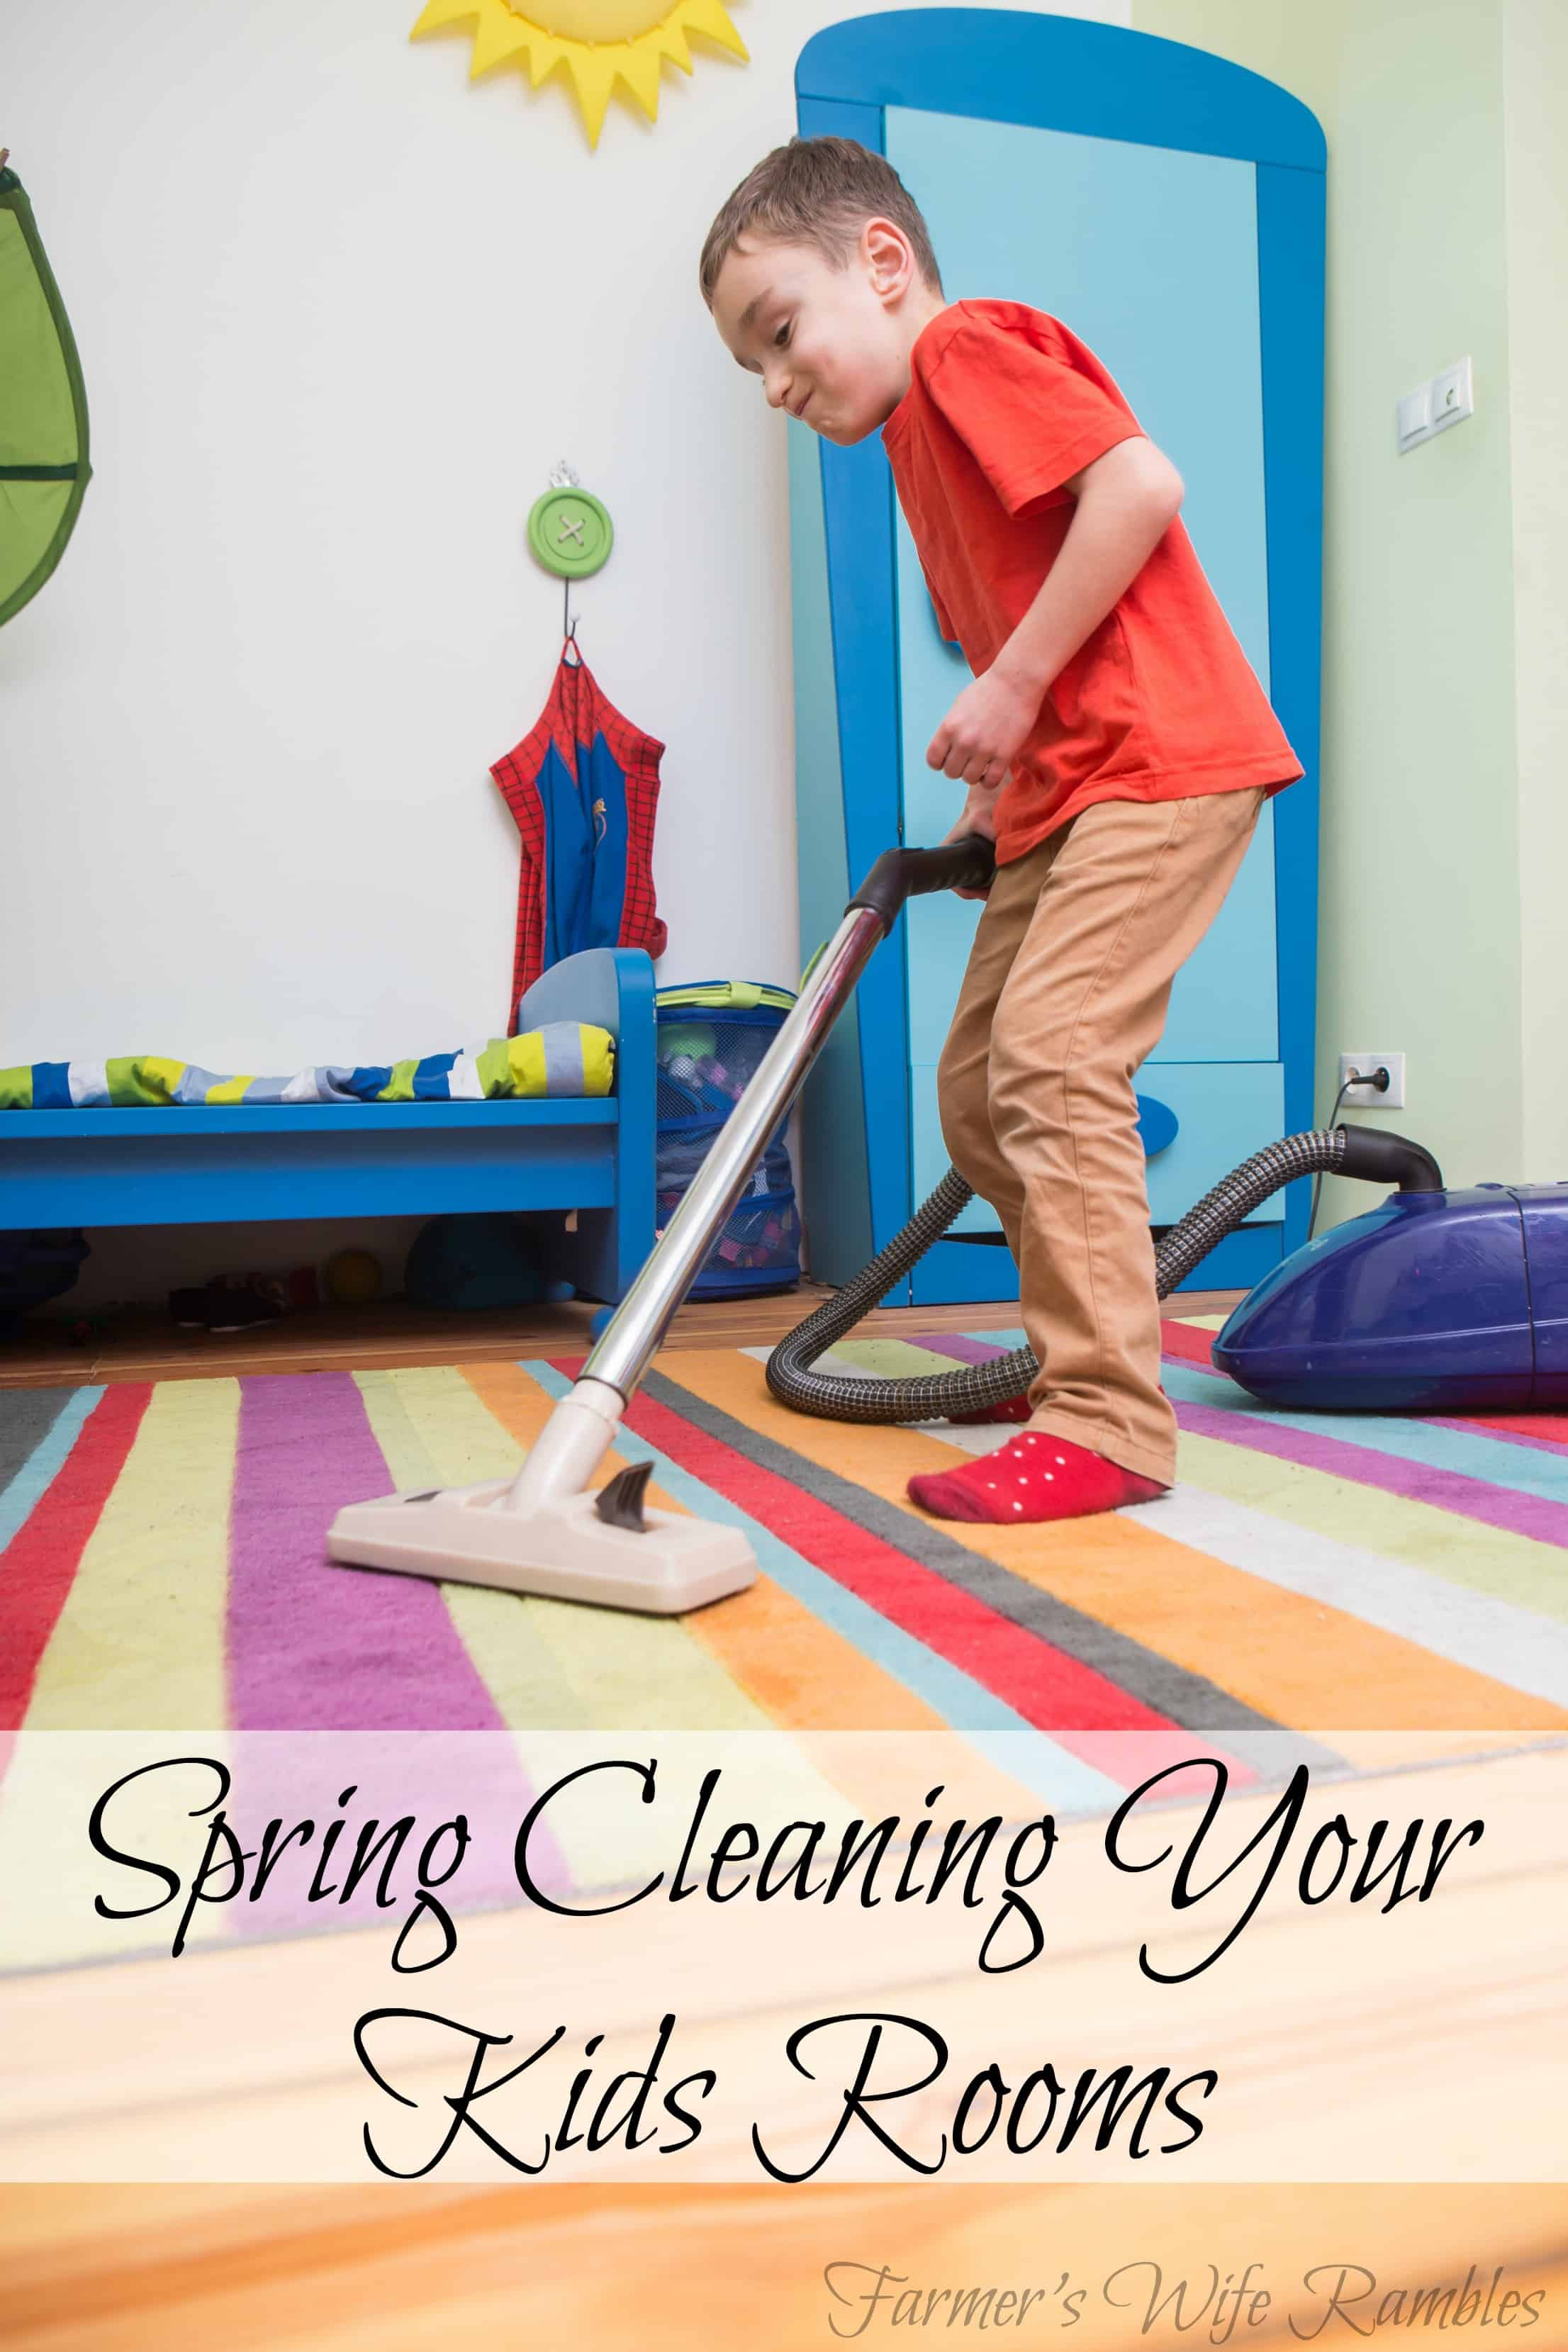 Spring Cleaning Your Kids Rooms - Farmer's Wife Rambles